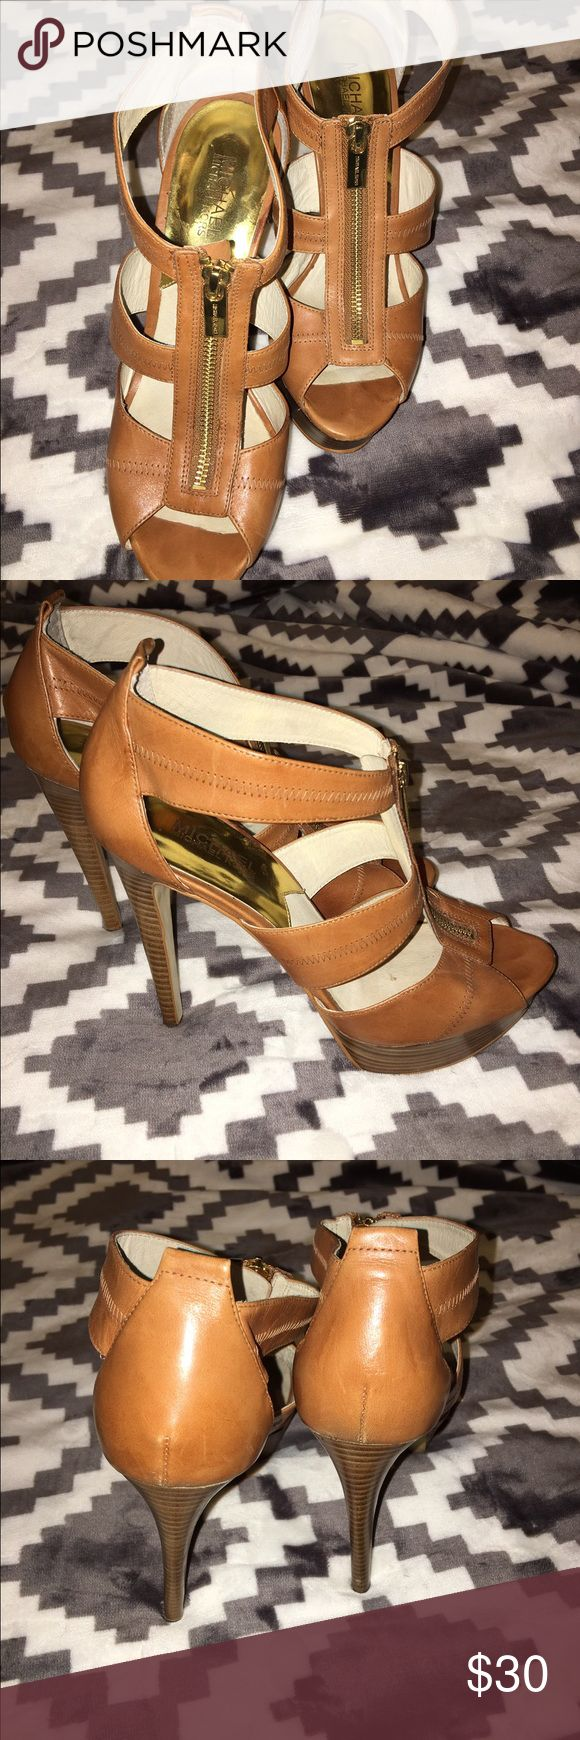 Michaels Kors Heels 9.5 Beautiful luggage leather MK heels in excellent condition! Other MK items in my closet...discount with bundle. Michael Kors Shoes Heels